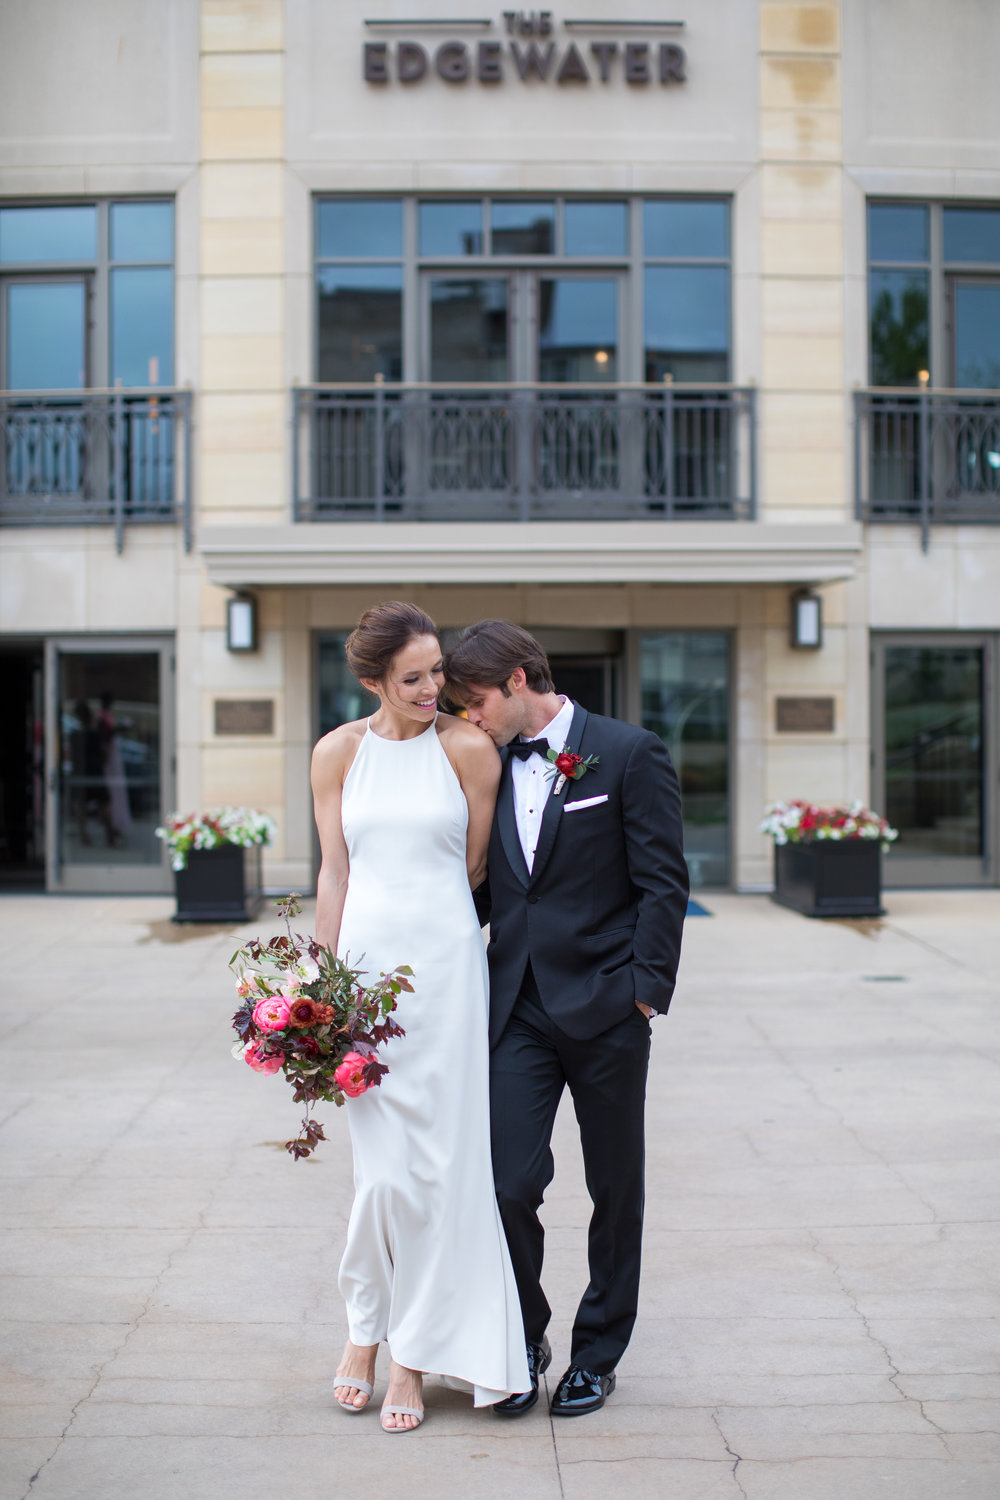 Midwest wedding photographer - first look